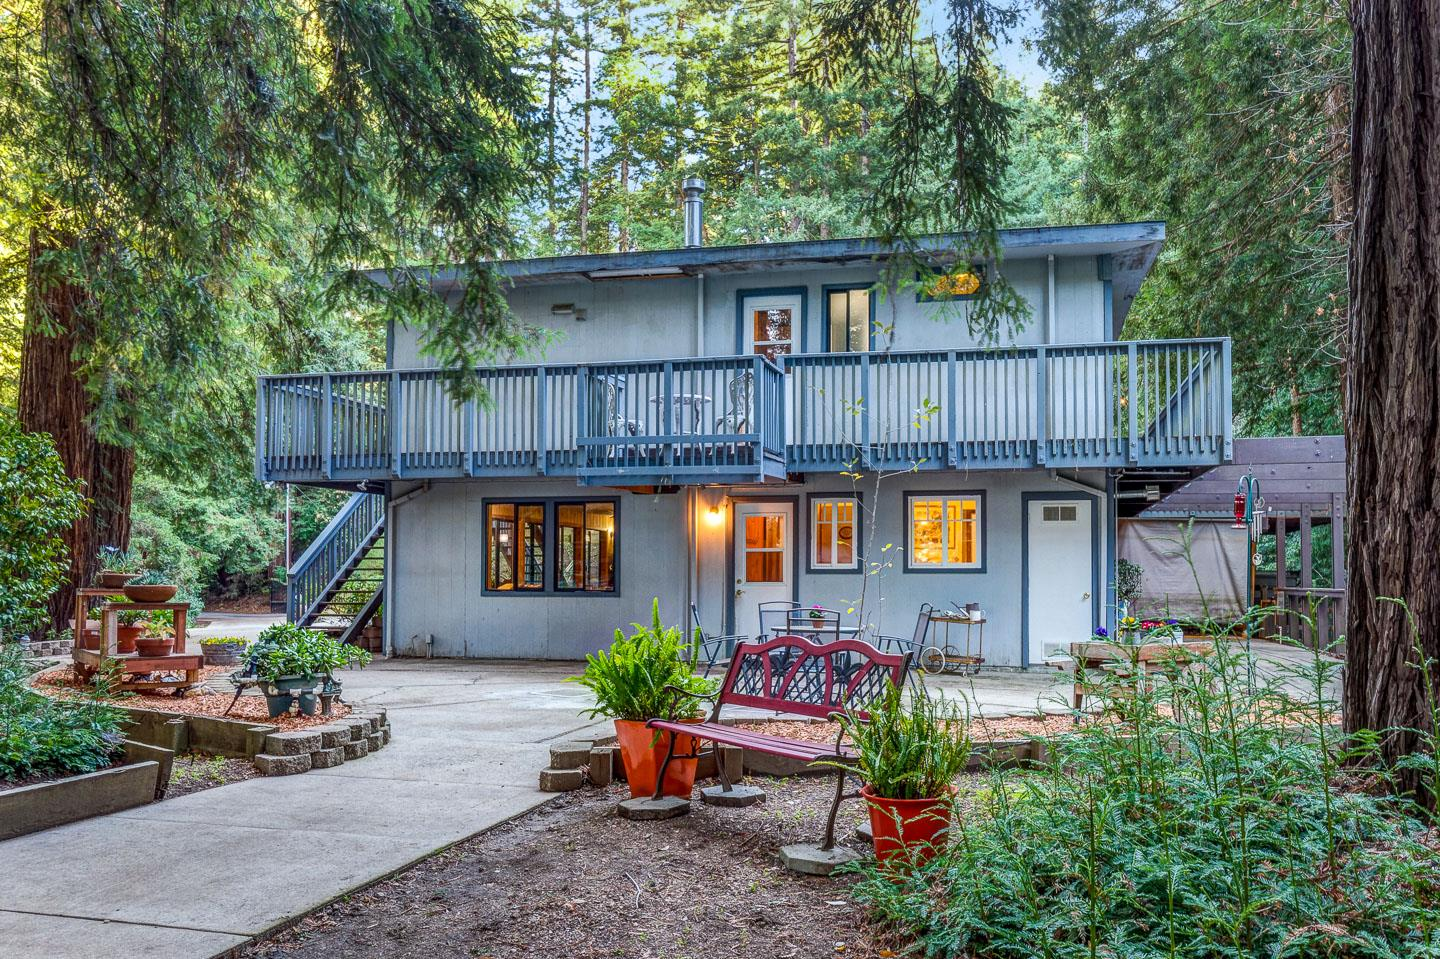 Nestled in the Santa Cruz Mountains, this one-of-a kind-home on 3 acres offers complete privacy. Ample windows maximize views of the majestic redwoods and natural surroundings.  Large wrap around deck to enjoy the fresh mountain air and fabulous night sky. Floorplan features 1152 SF upstairs with a large living room, dining area, kitchen, two bedrooms, full bathroom, and large pantry! Downstairs includes 1152 SF with a large family room with a cozy free-standing gas stove, office area, master bedroom w/ large walk-in closet, a full bathroom,  and laundry nook.  Storage abounds!   Perfect for a work-at-home or a multi-generational buyer!  Large workshop, two car-carport, storage shed, potting shed, jacuzzi and children's play yard. Private well with three storage tanks. Deer fenced with a lovely entry gate. Plenty of sun to grow vegetables in the summer!  Loads of paved parking. Close to town, yet private.  Easy access to Highway 17.  10 minutes to Los Gatos, 12 minutes to Santa Cruz.